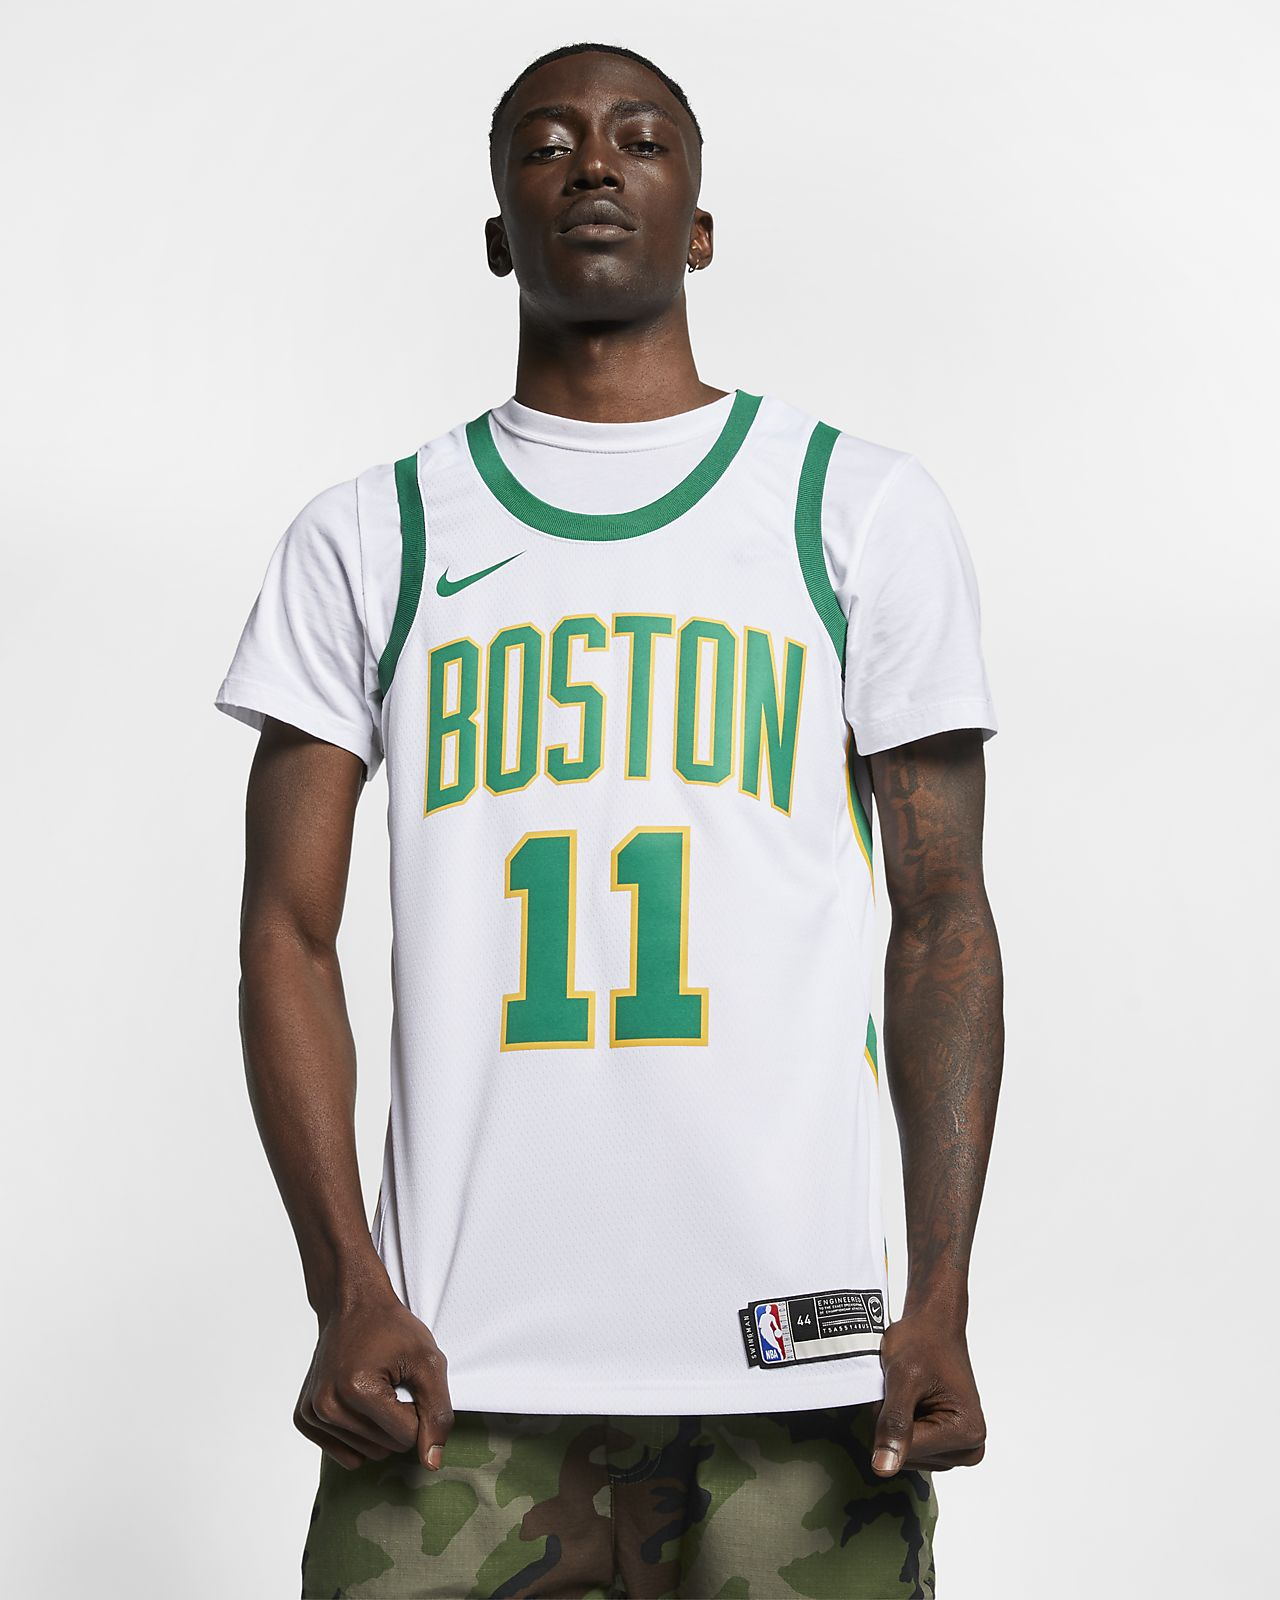 competitive price dc0af f8702 celtics sleeved jersey